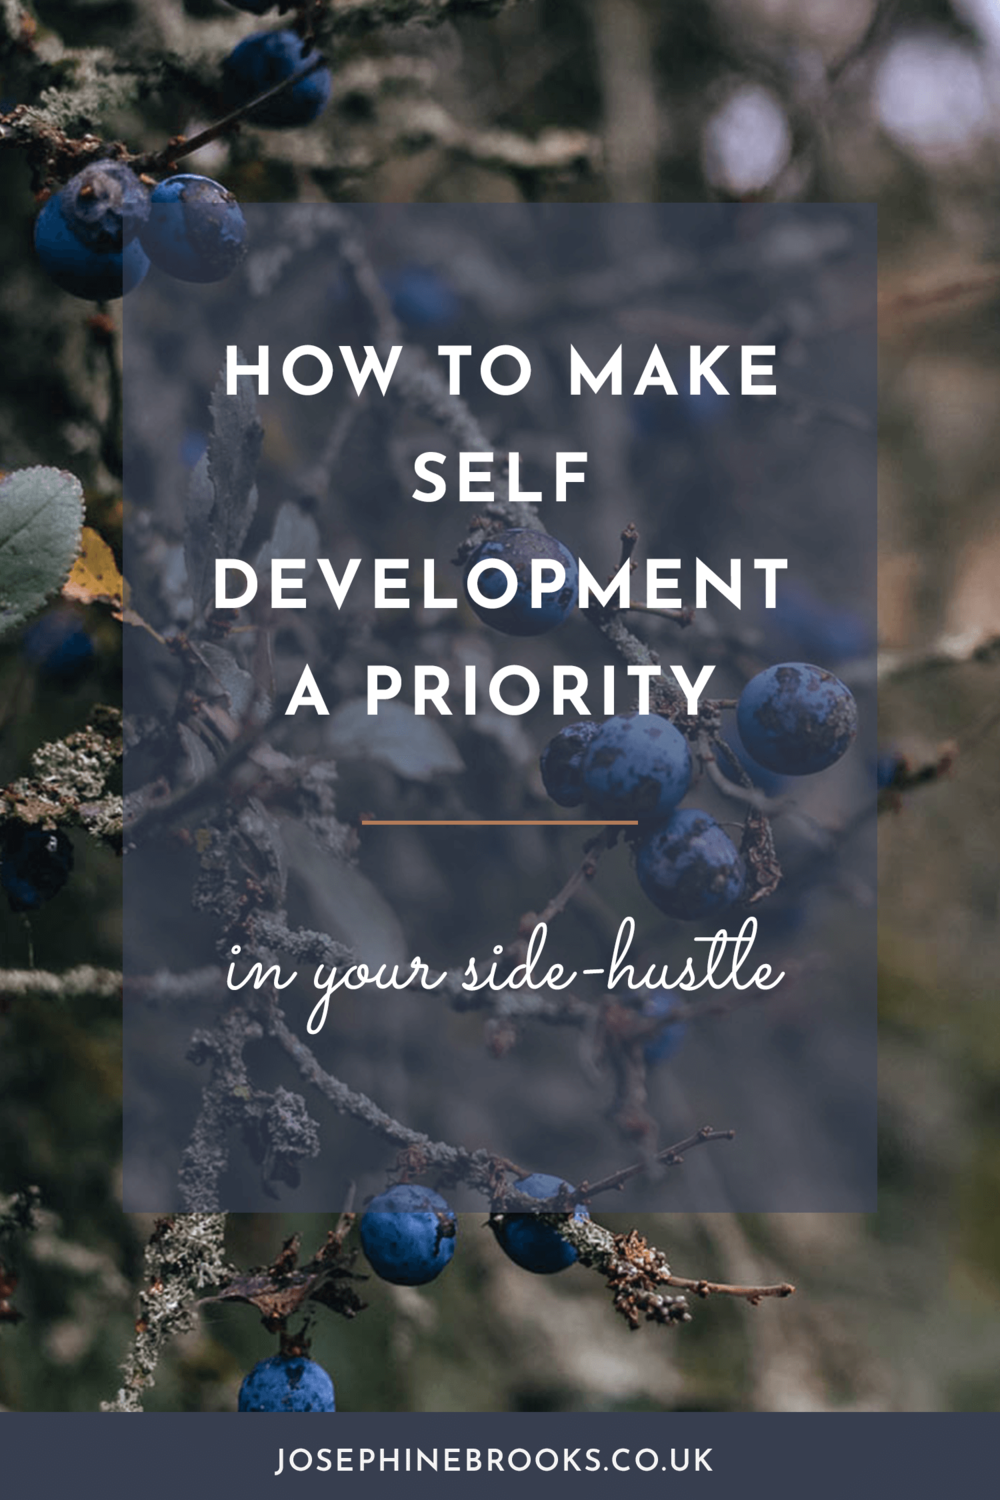 Why Prioritising your own self development is so important for side-hustlers, finding a business coach or mentor